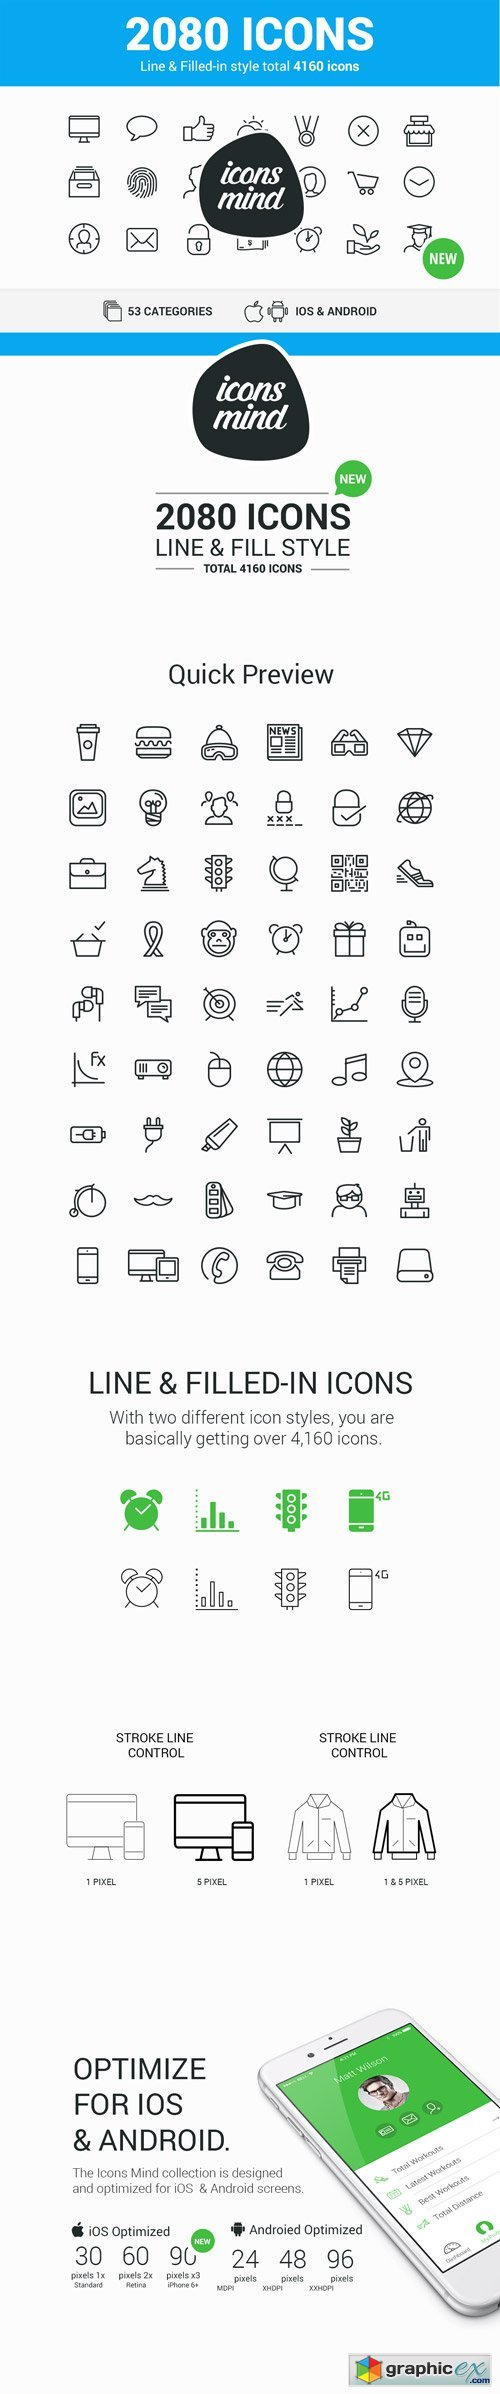 MightyDeals - 2000+ High-Quality Vector Icons (outline and filled)